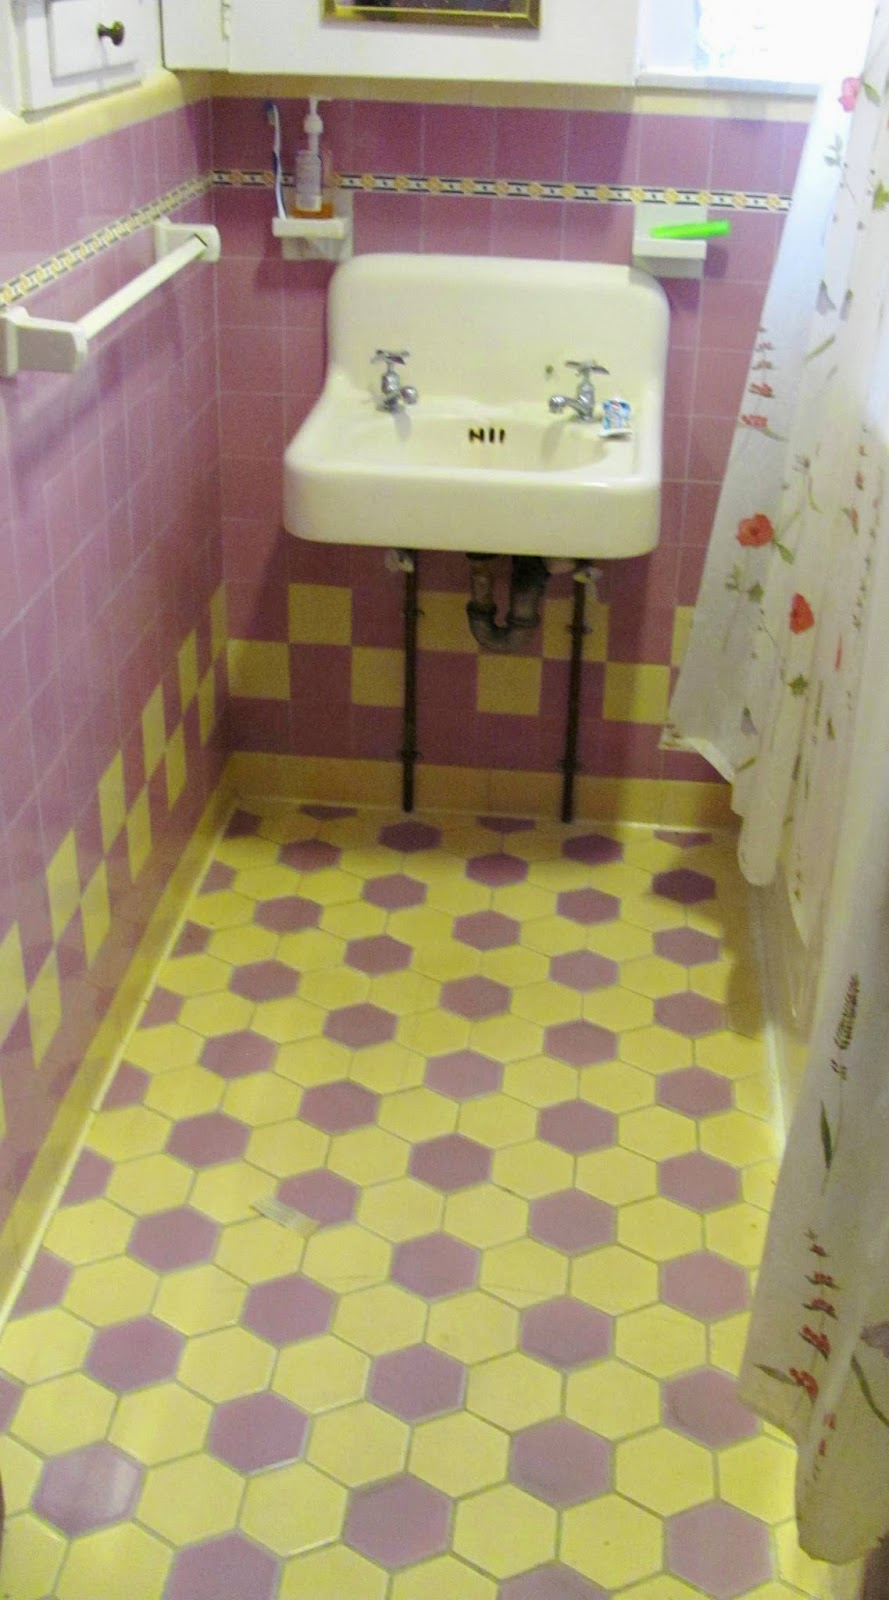 40 great pictures and ideas of 1920s bathroom tile designs